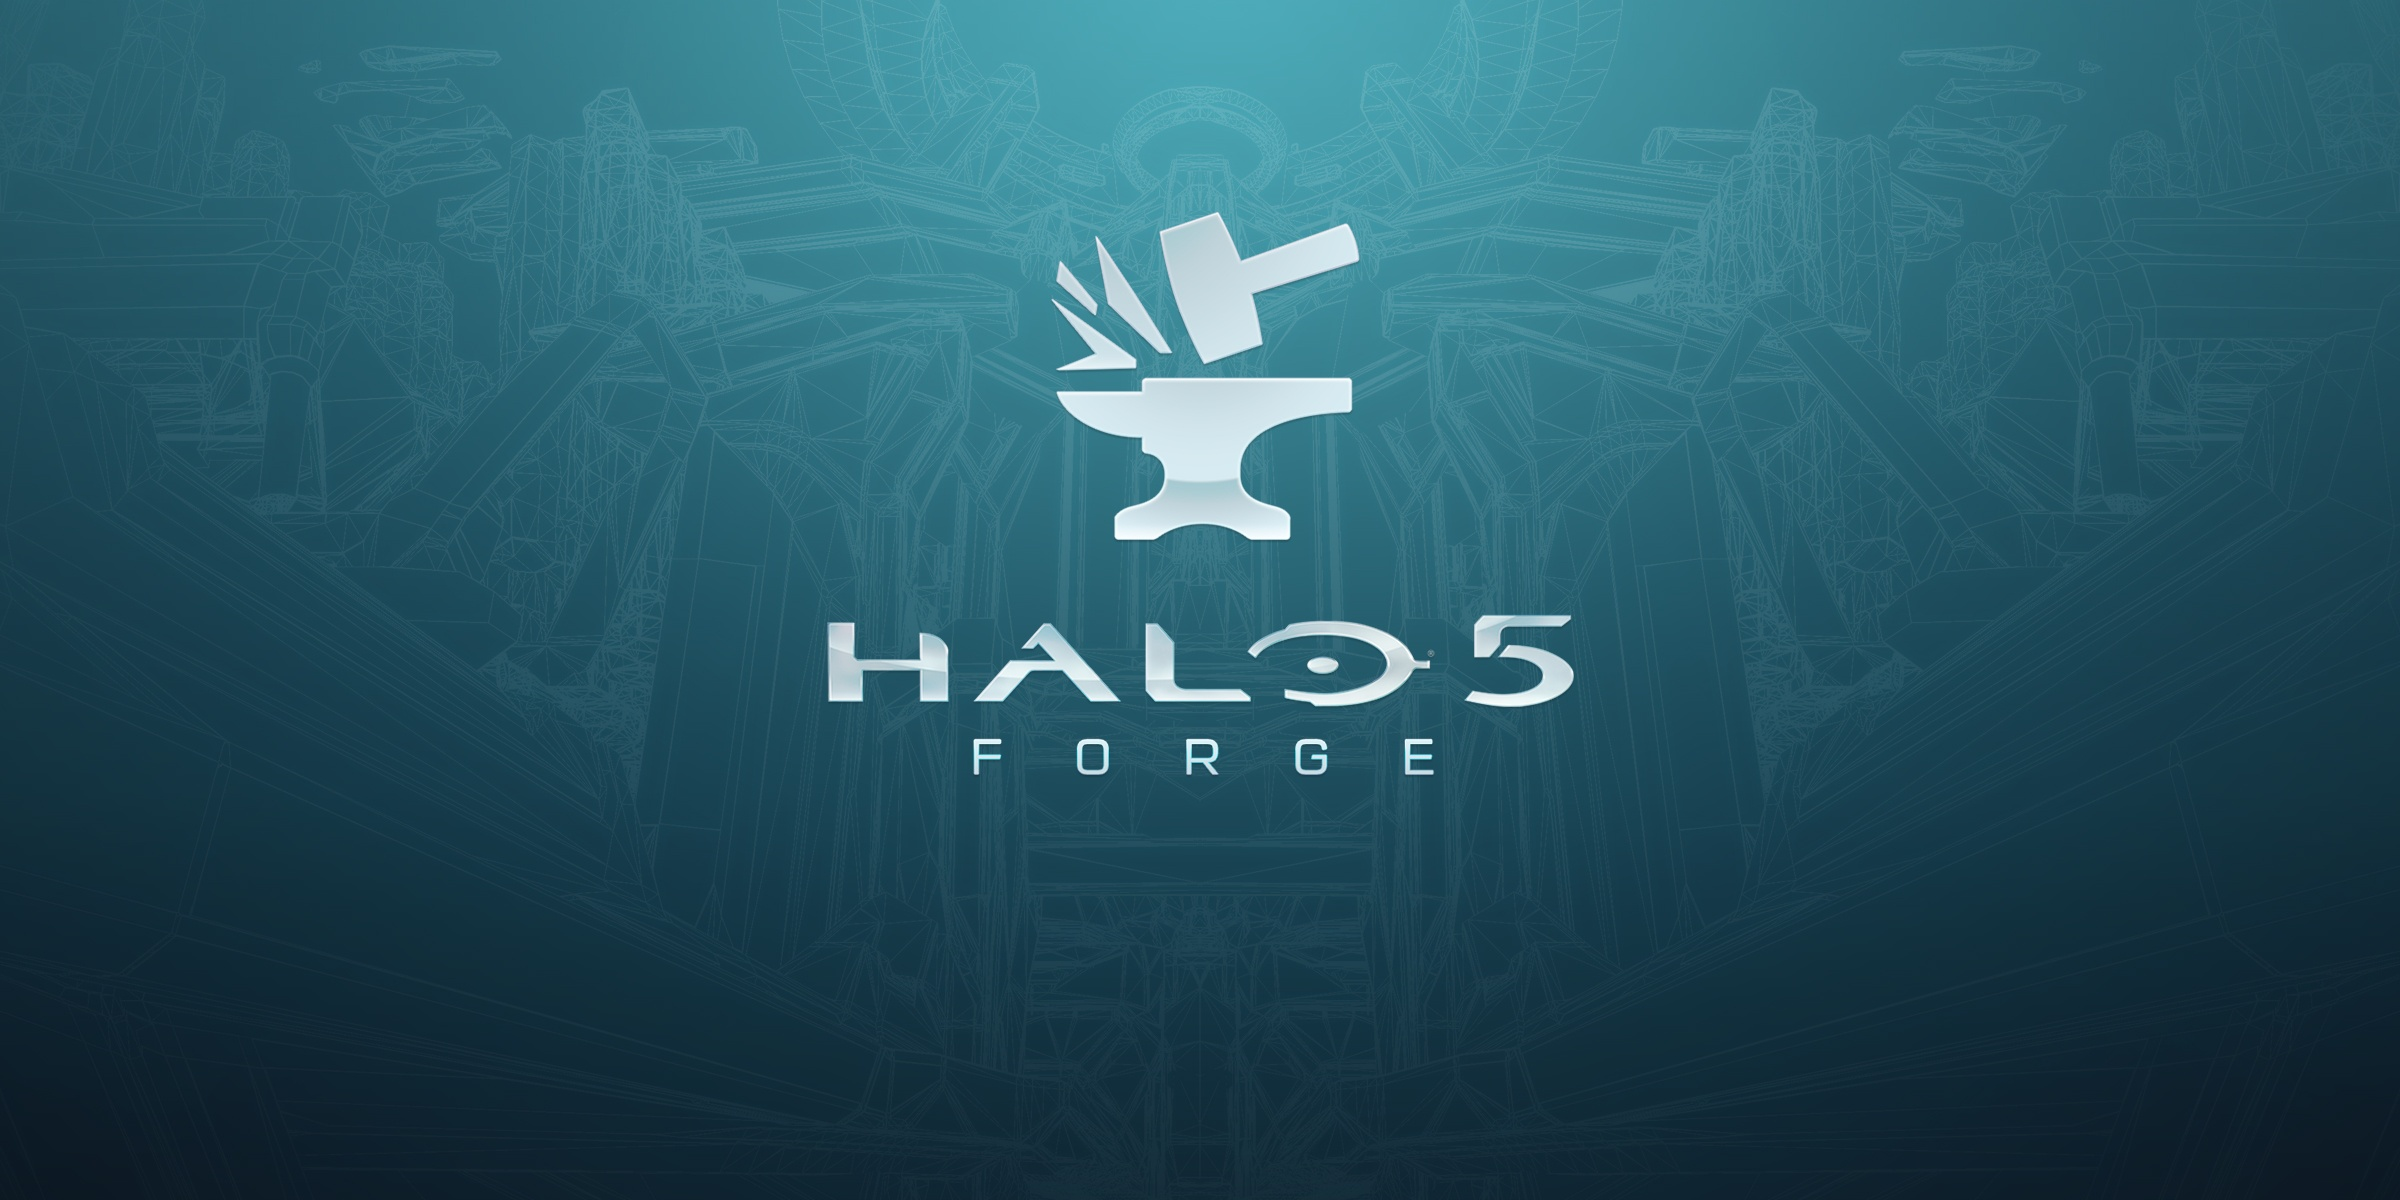 Halo-5-Forge-Horizontal-1.jpg